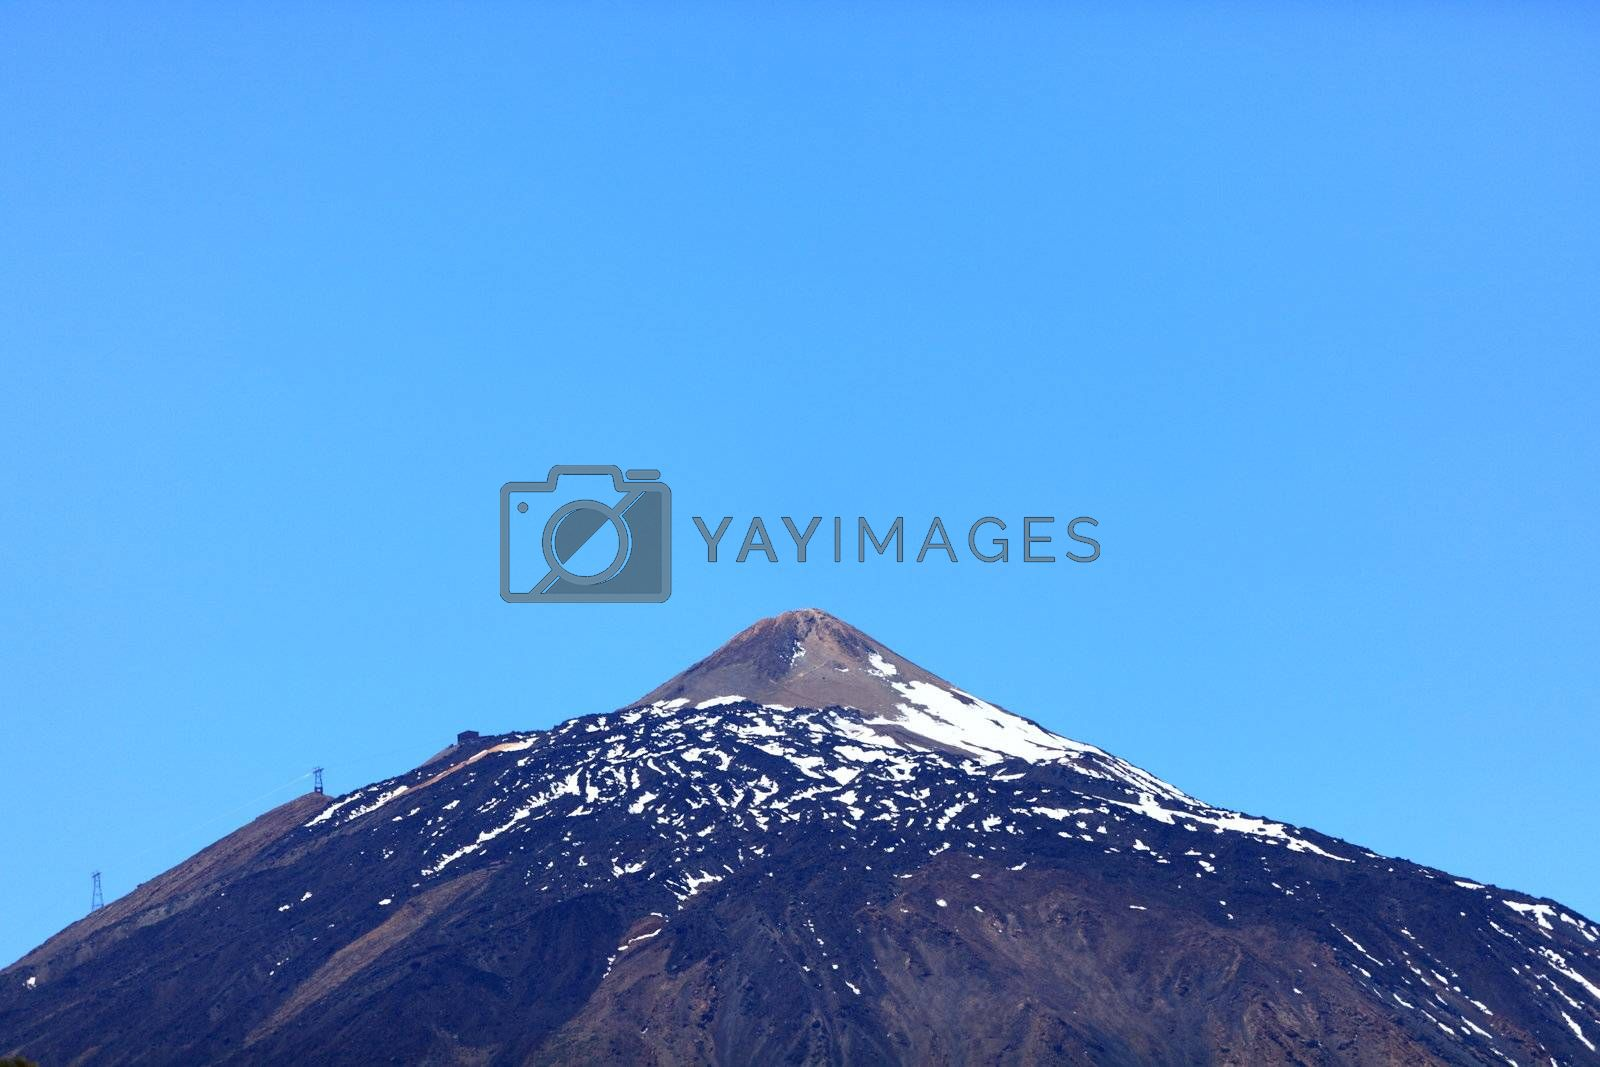 Teide mountain top. Pico del Teide - partly snow covered volcano peak photo from Tenerife during spring.